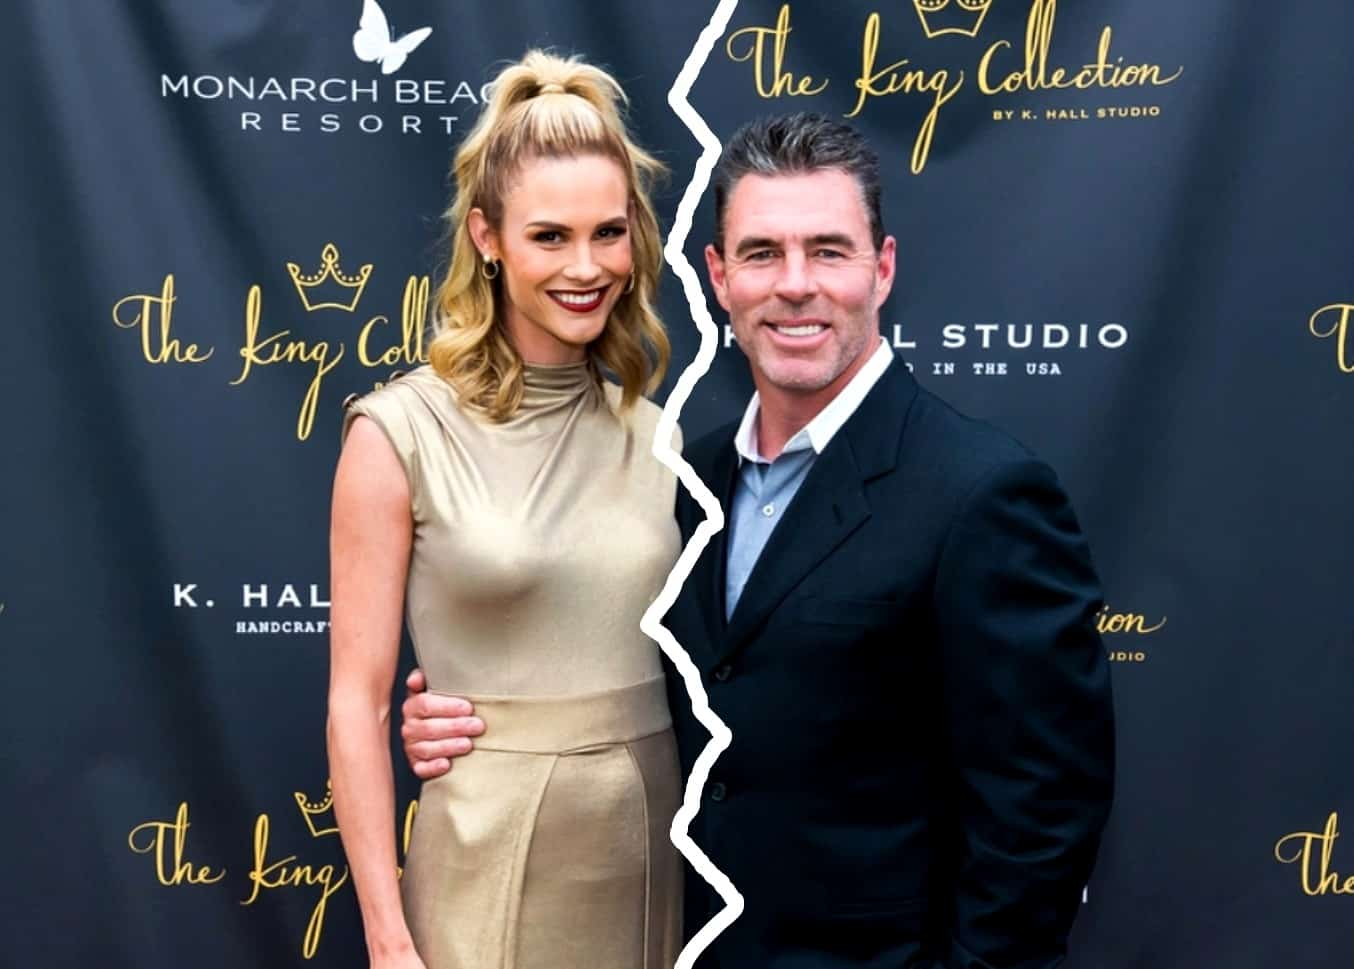 RHOC's Meghan King Edmonds Accuses Husband Jim of Affair With Their Nanny, Plus See Her Instagram Post Following Divorce News